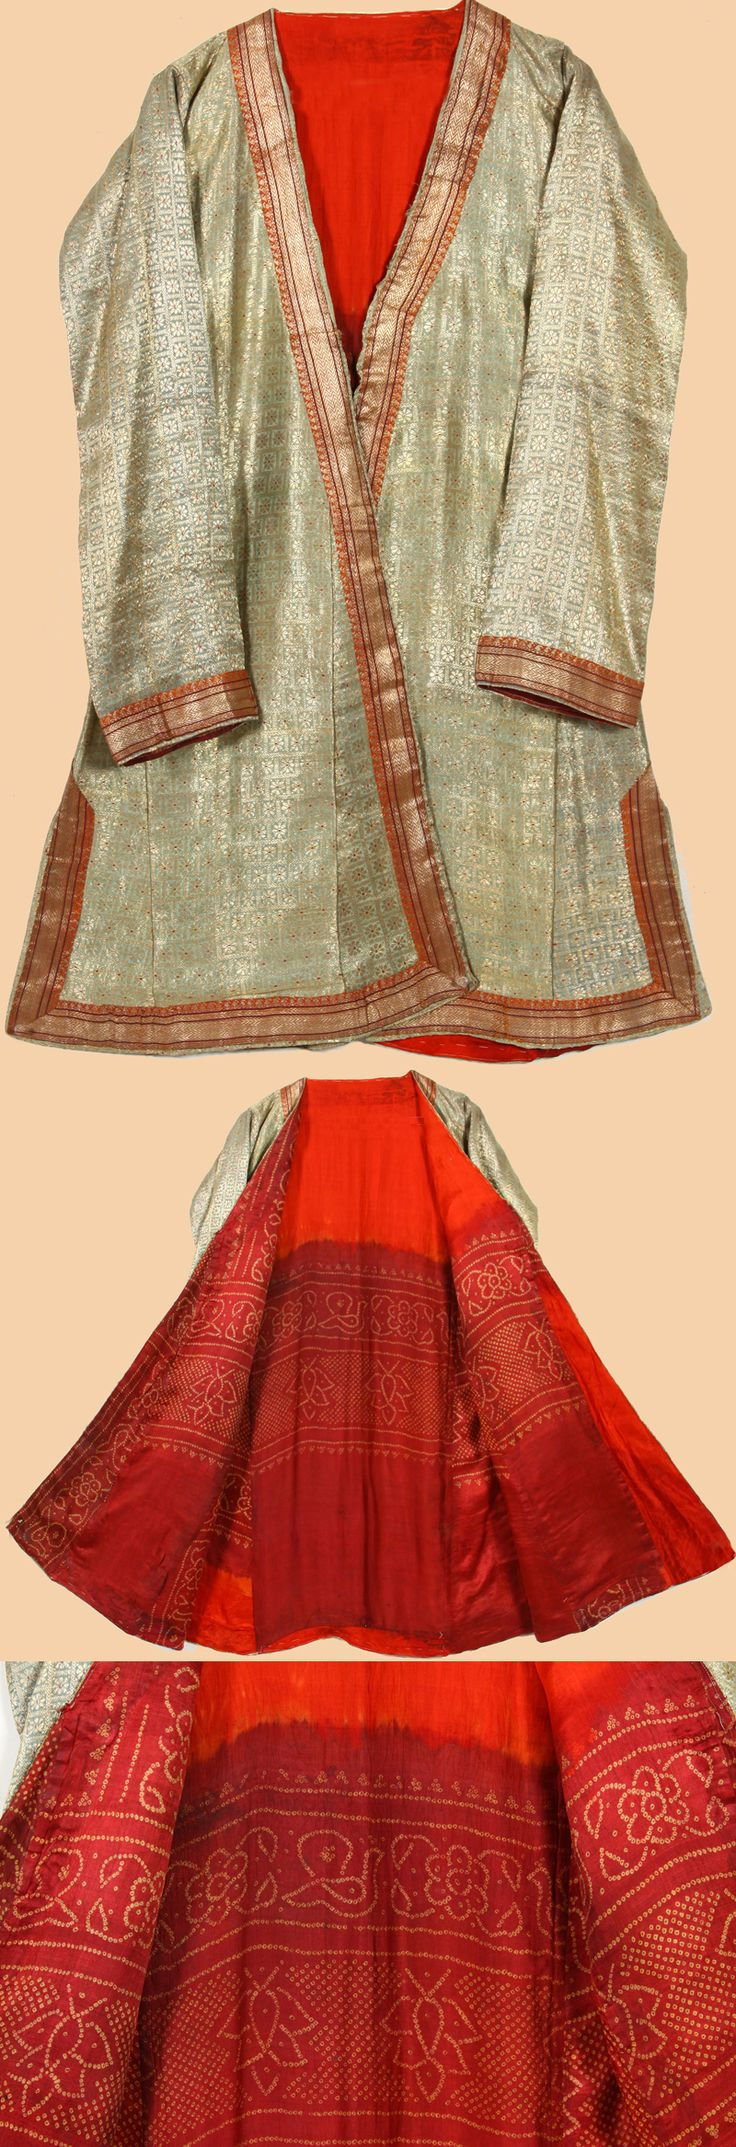 281 best fashion mughal images on pinterest indian textiles antique indian mughal robe silk brocade with silver thread 1800 1900 ad sciox Choice Image